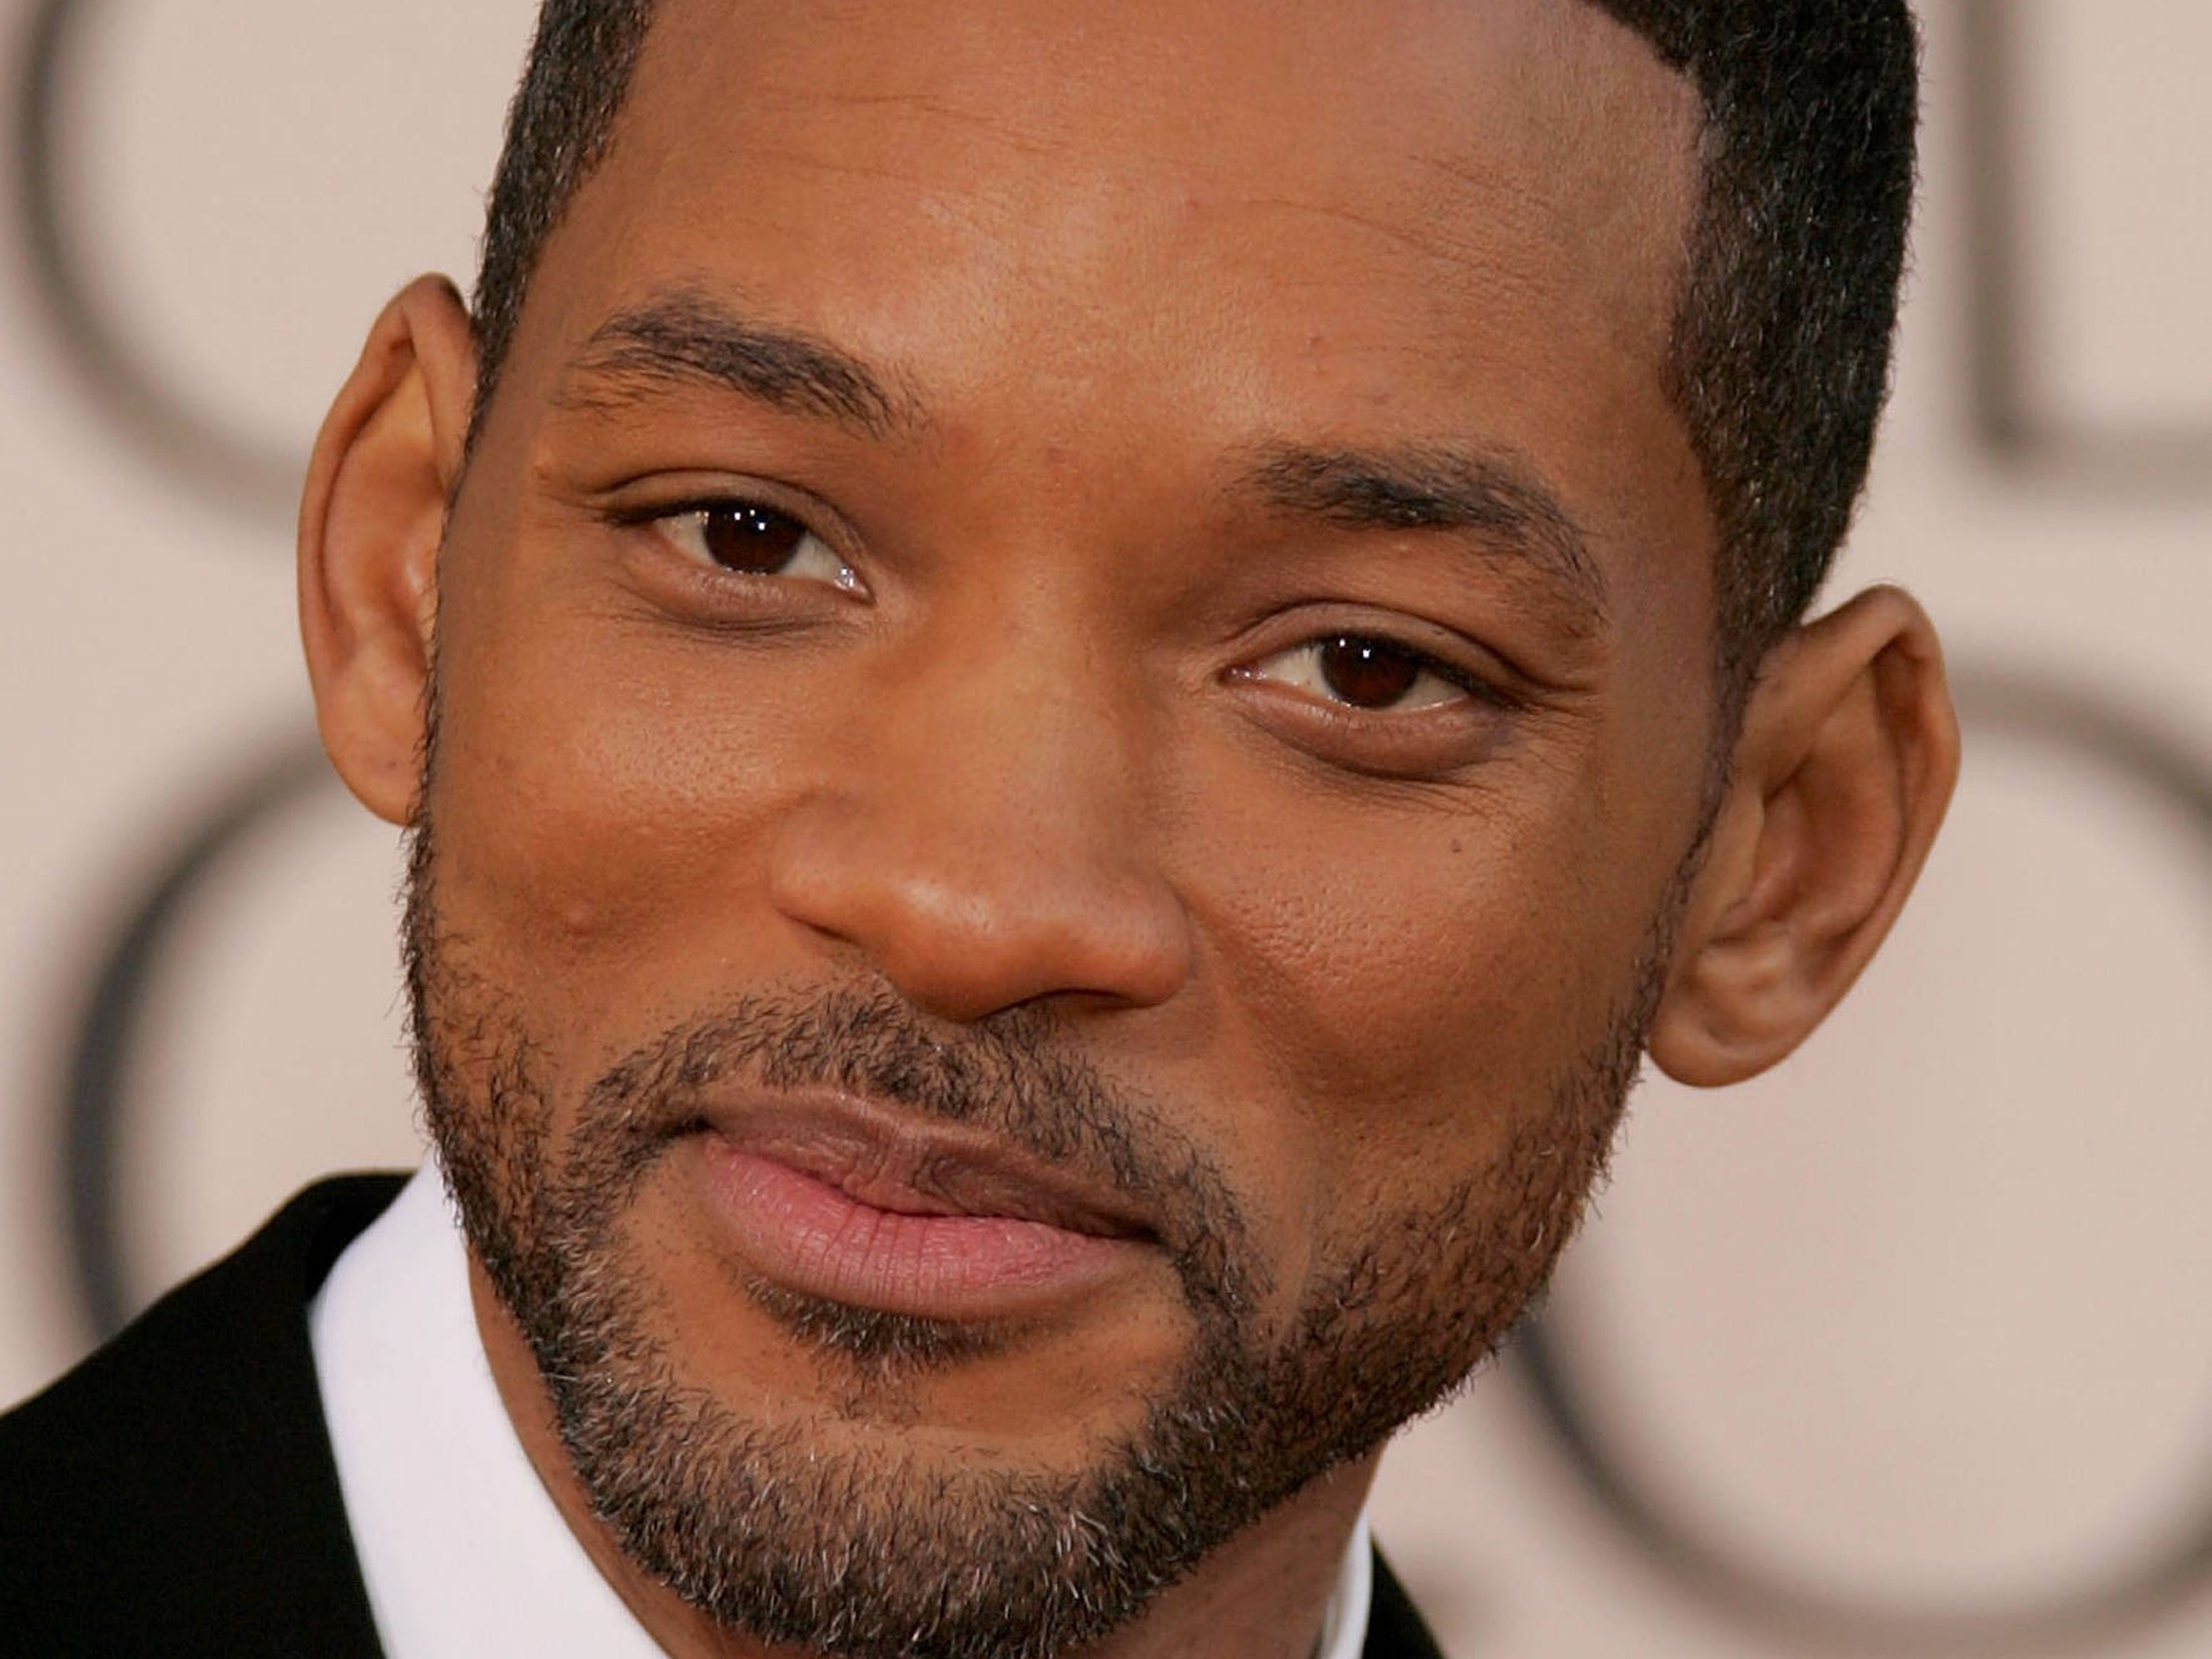 Exceptional Will Smith Professional Hd Walls Part 5